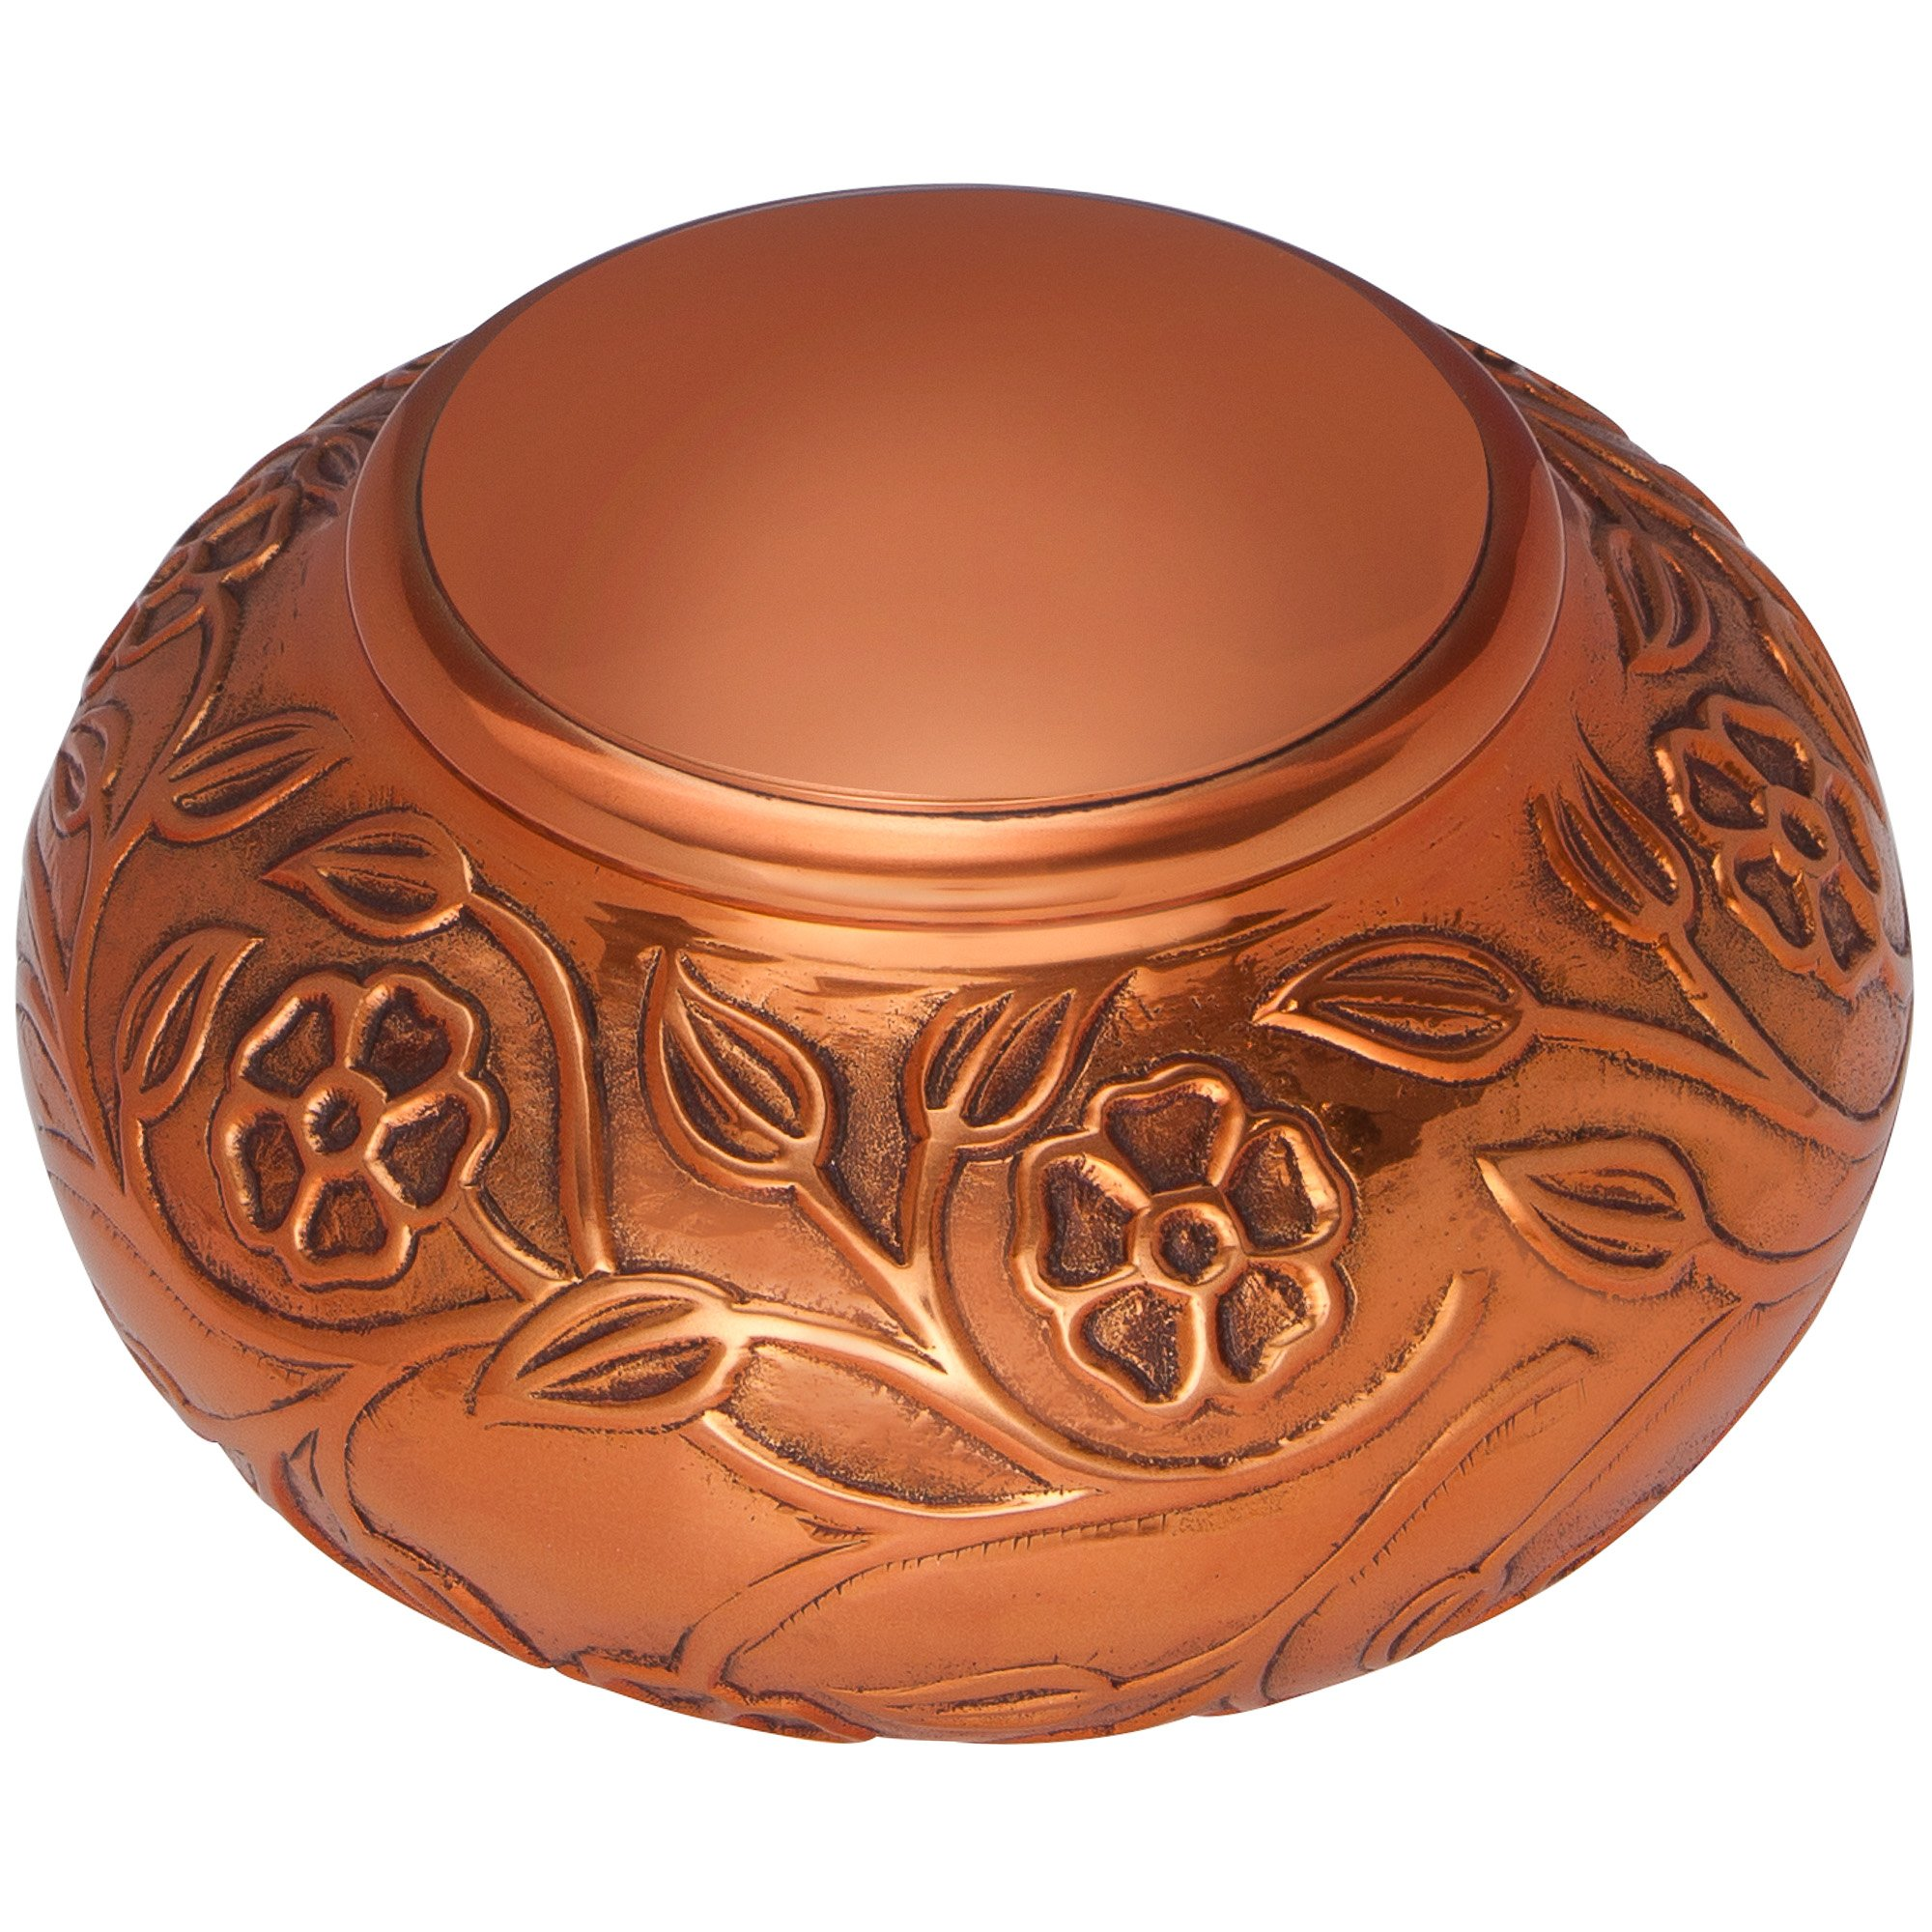 Copper Funeral Urn by Liliane Memorials - Cremation Urn for Human Ashes - Hand Made in Brass - Suitable for Cemetery Burial or Niche - Large Size fits remains of Adults up to 70 lbs by Liliane Memorials (Image #3)